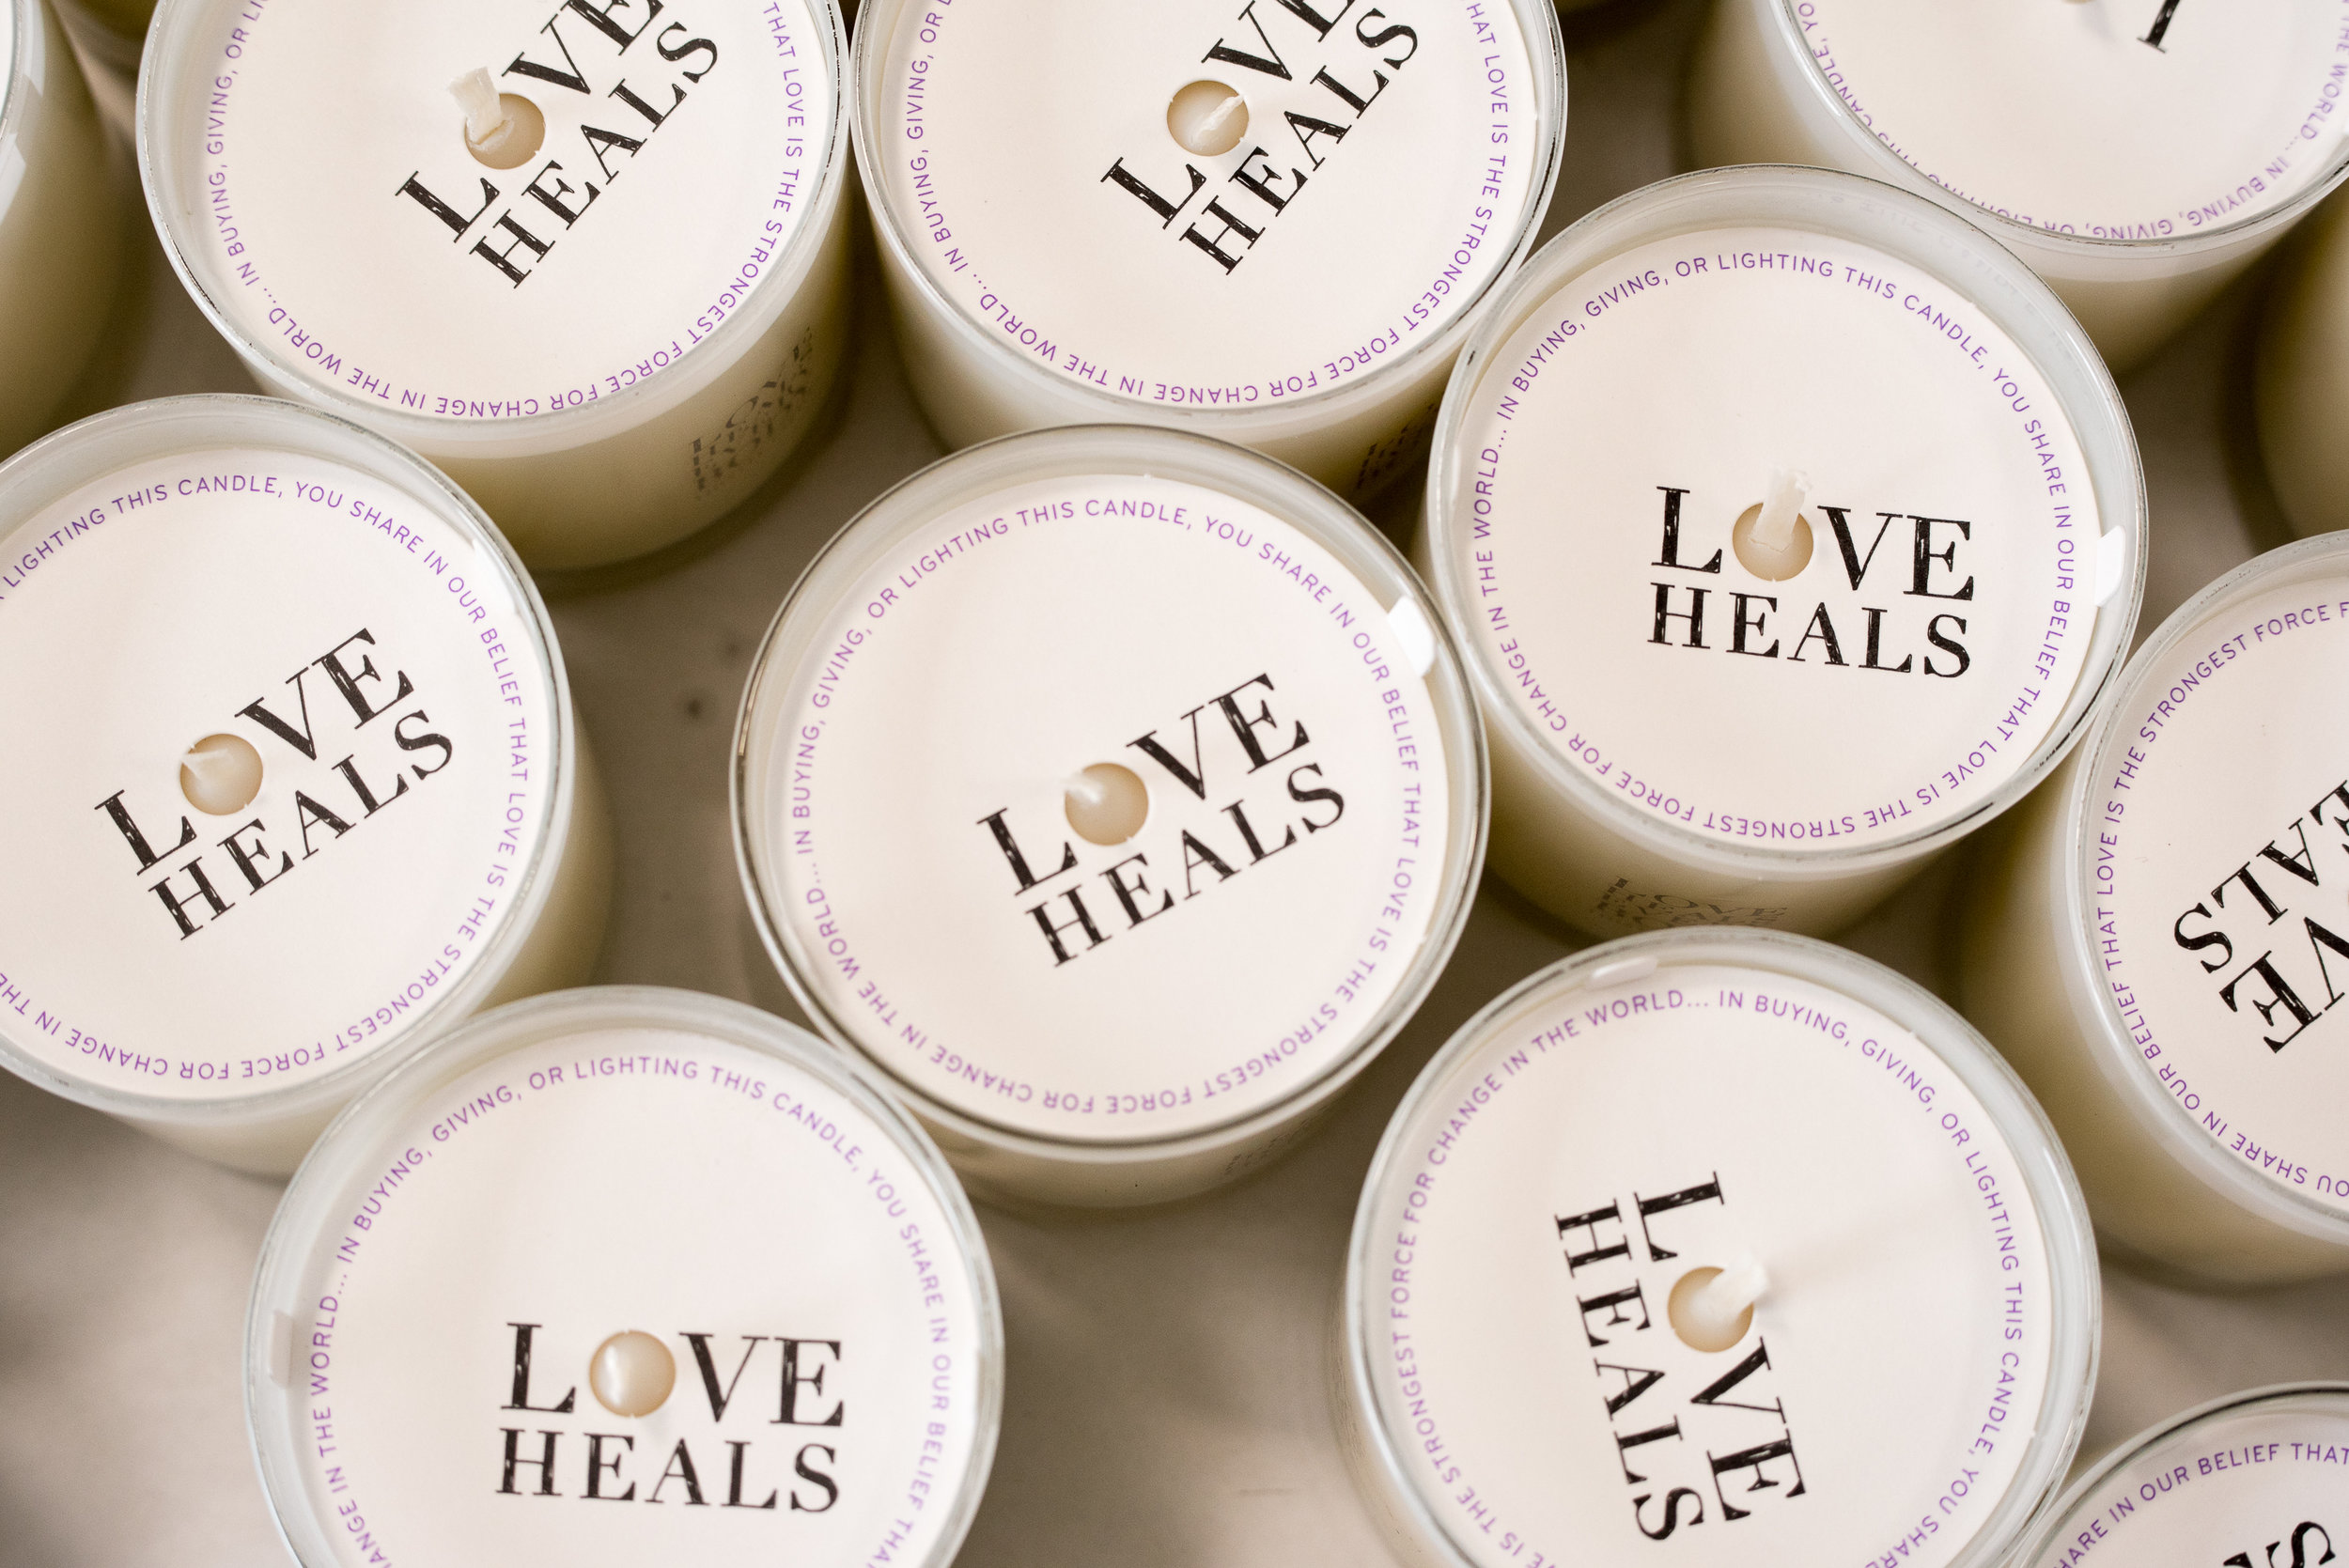 Thistle Farms is a social enterprise,founded by Marcus's wife Becca, that serves women who have survived lives of violence, addiction, and prostitution. Thistle Farms is the largest survivor-led social enterprise in the country and produces by hand all-natural bath and body care products.